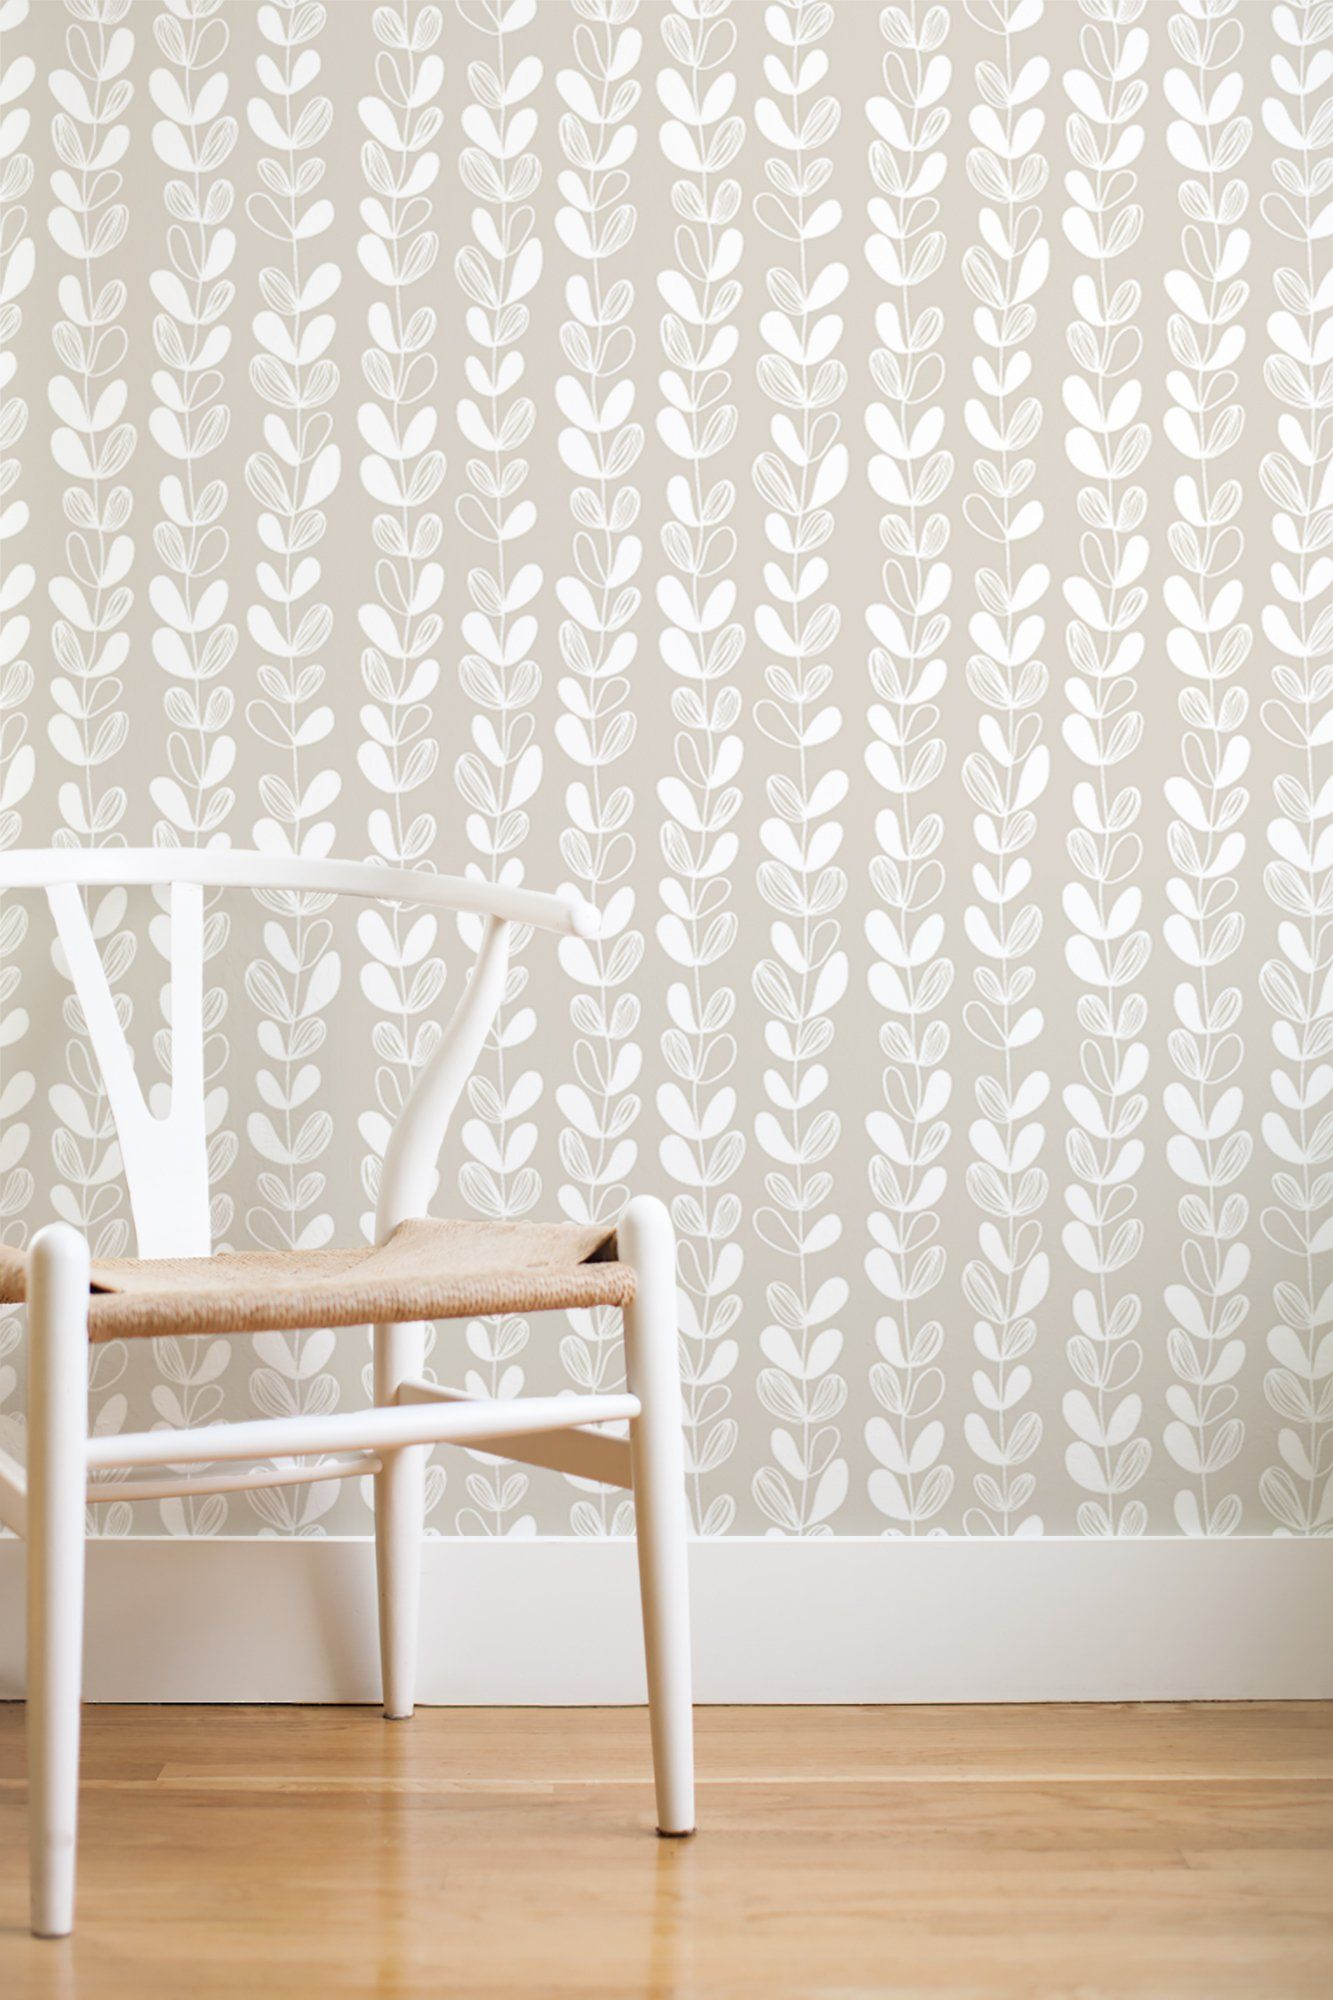 Frosted leaves removable wallpaper grey Removable